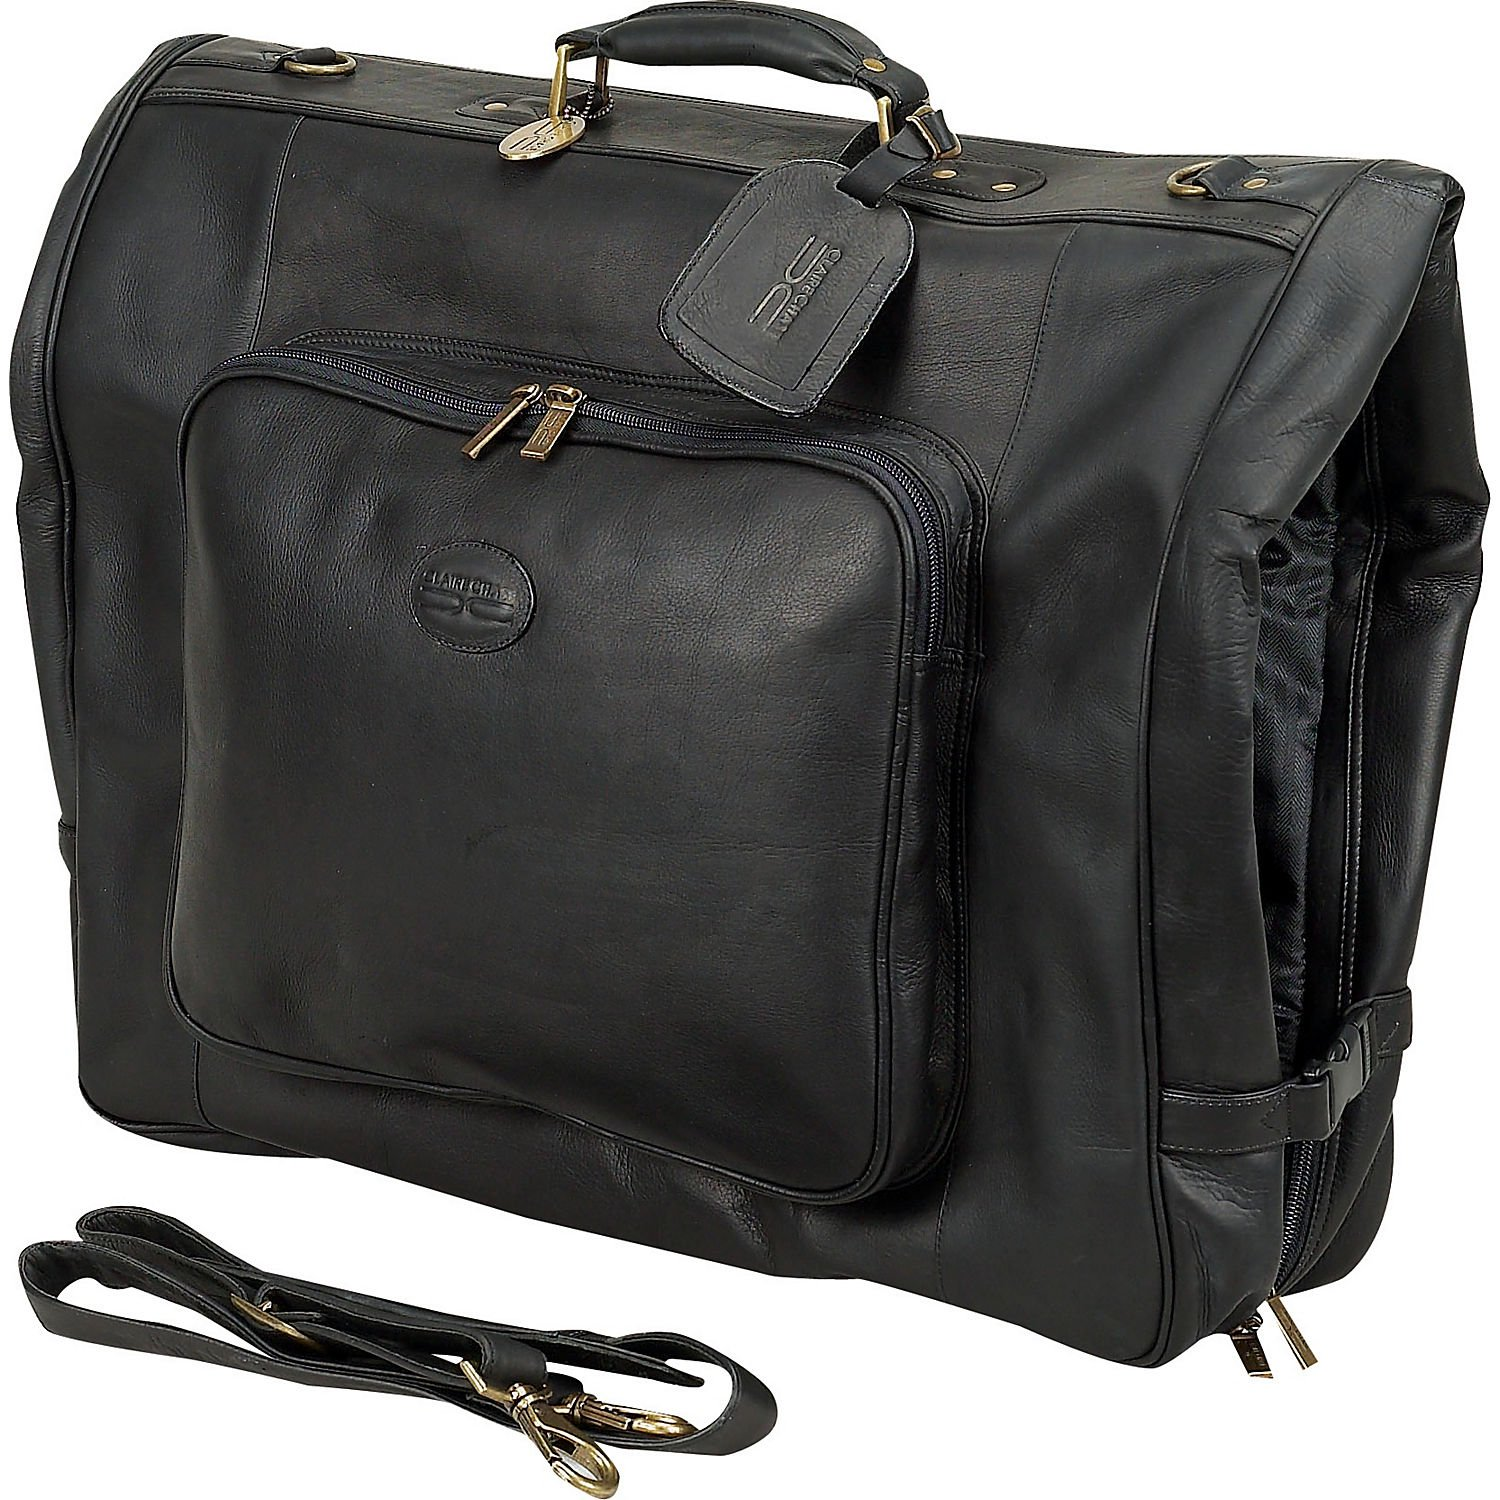 Amazon.com: Claire Chase Classic Leather Garment Bag (Negro ...